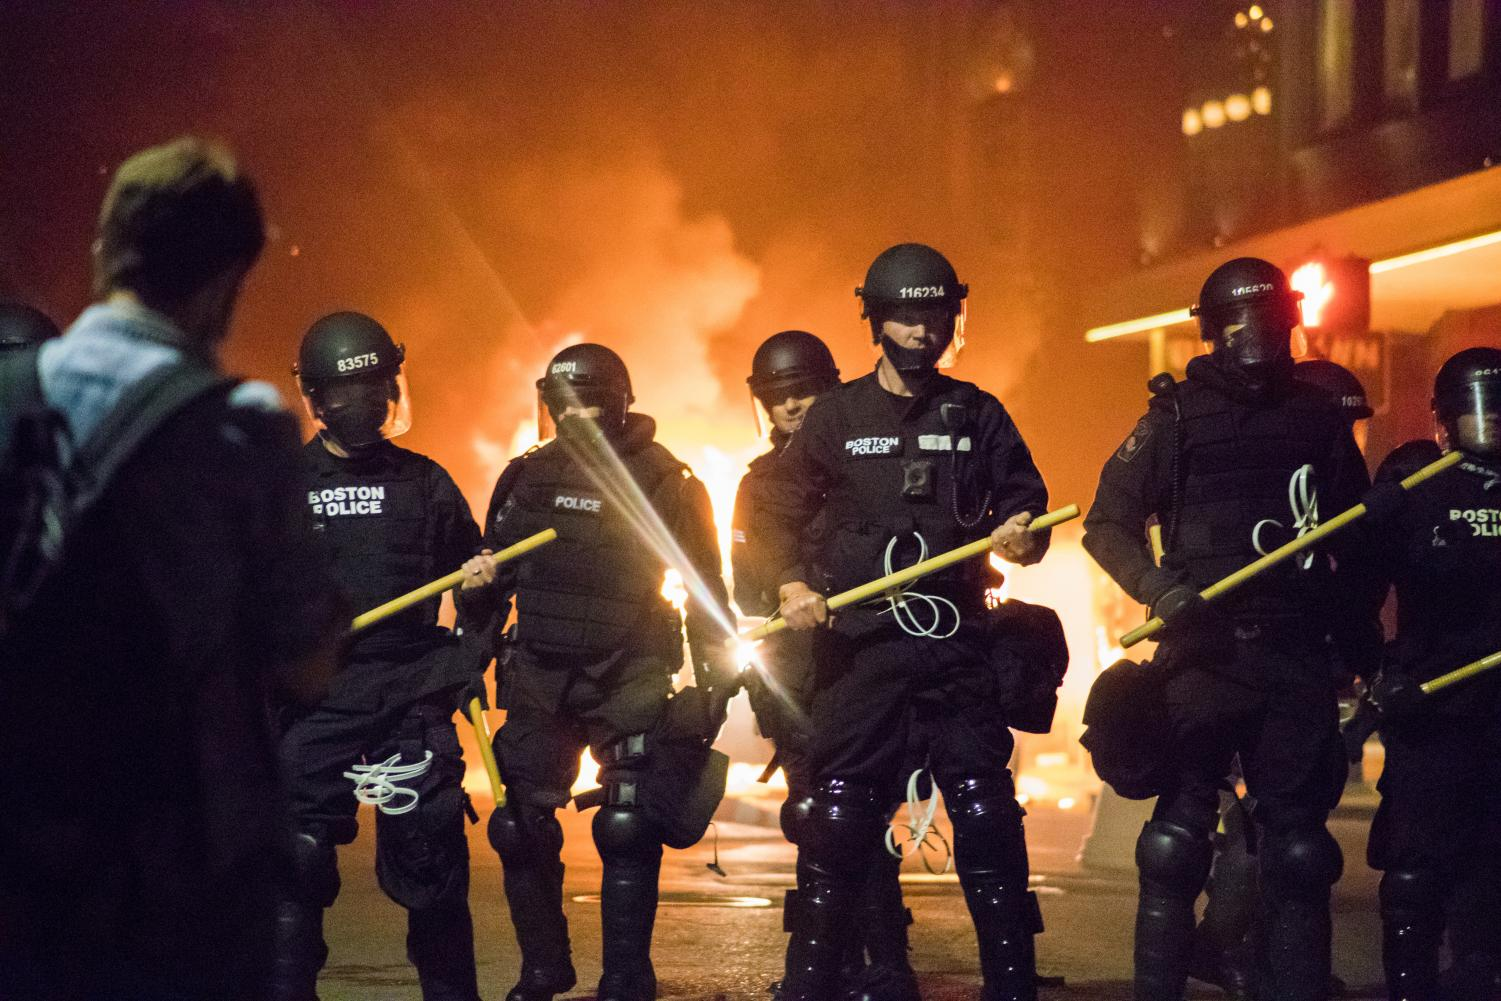 Violence Erupts Near Boston Campus As Police And Protesters Clash The Berkeley Beacon